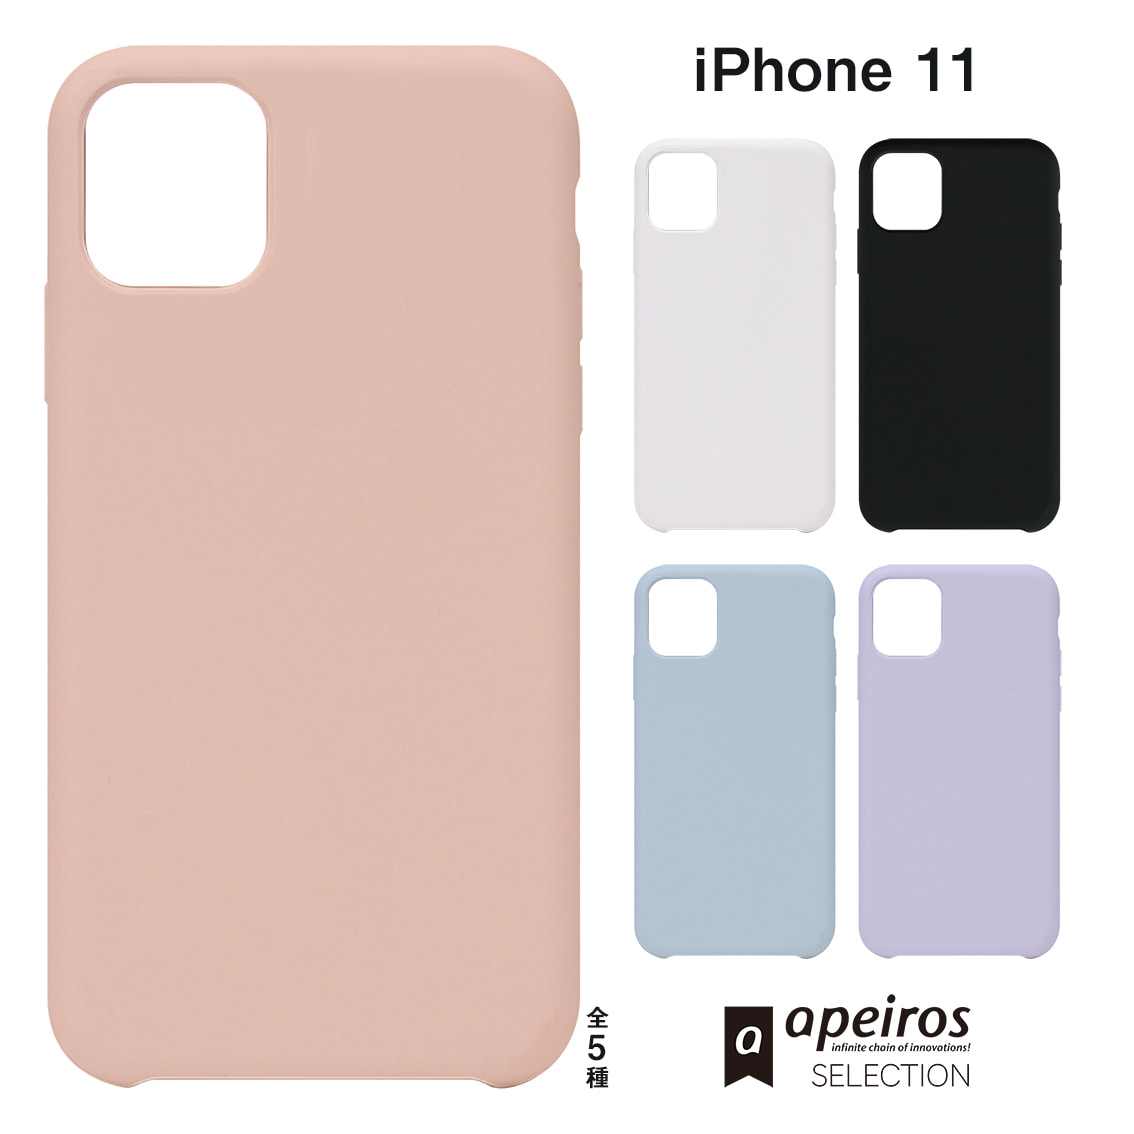 iPhone 11  シリコンケース[apeiros SELECTION]